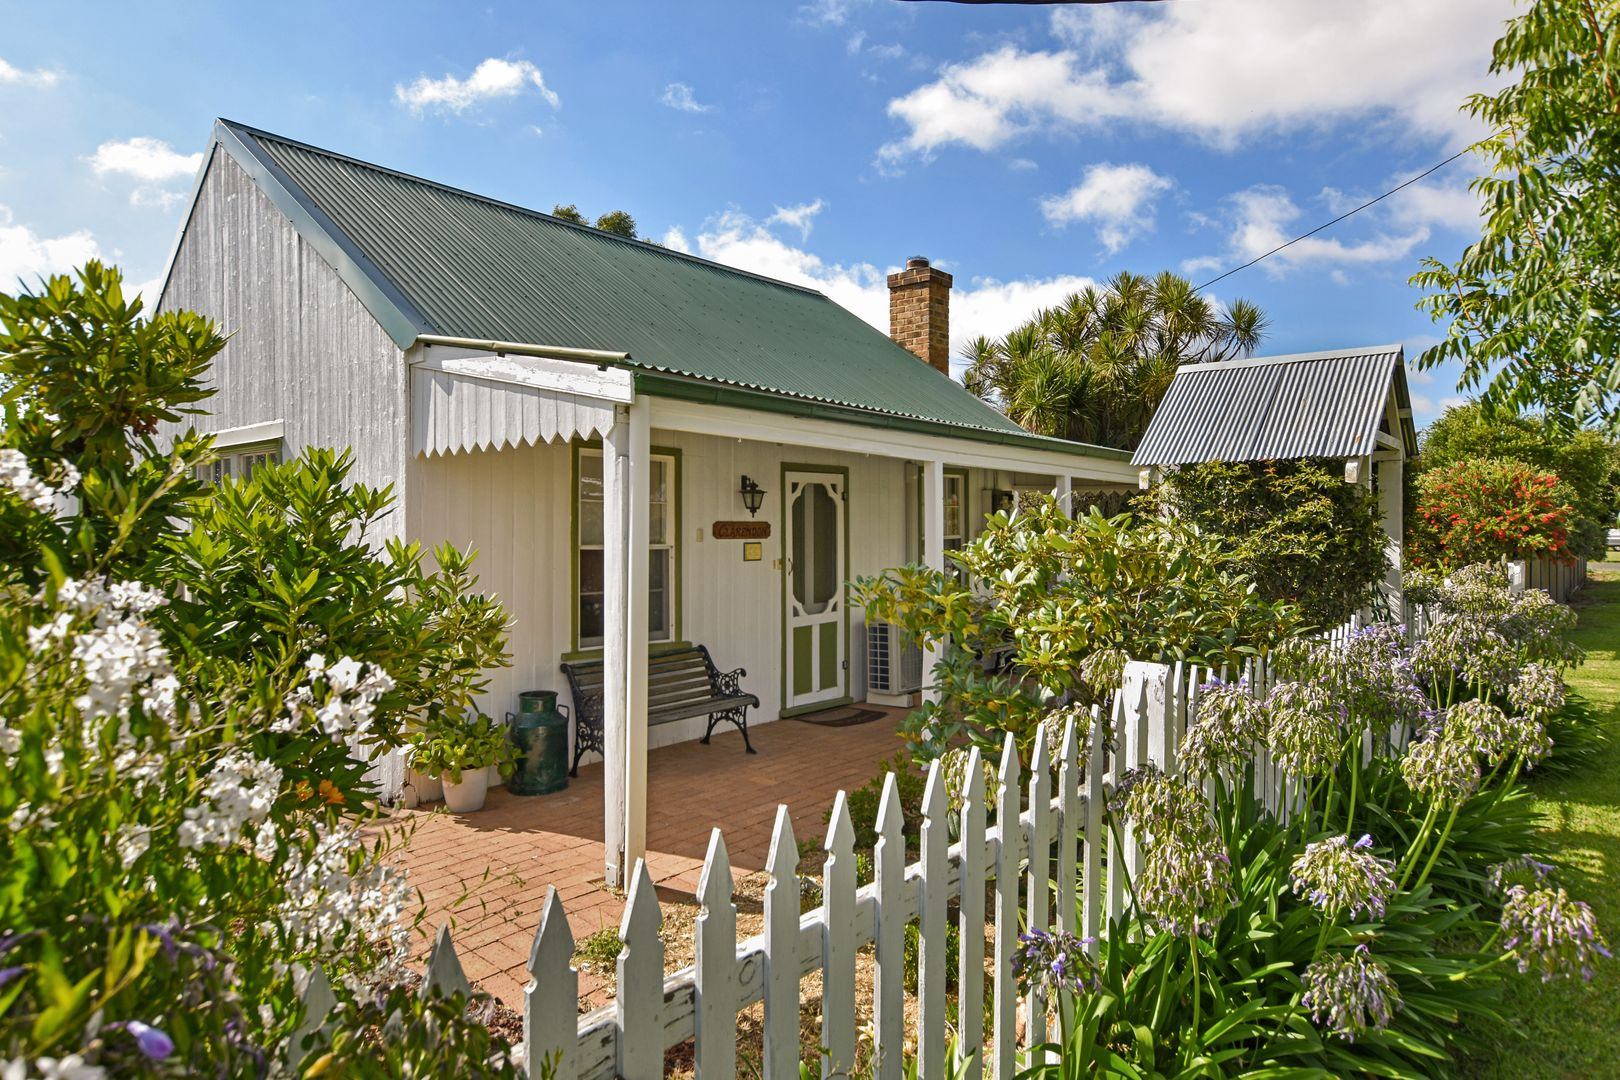 18-20 Lucknow Street, Spring Hill NSW 2800, Image 0